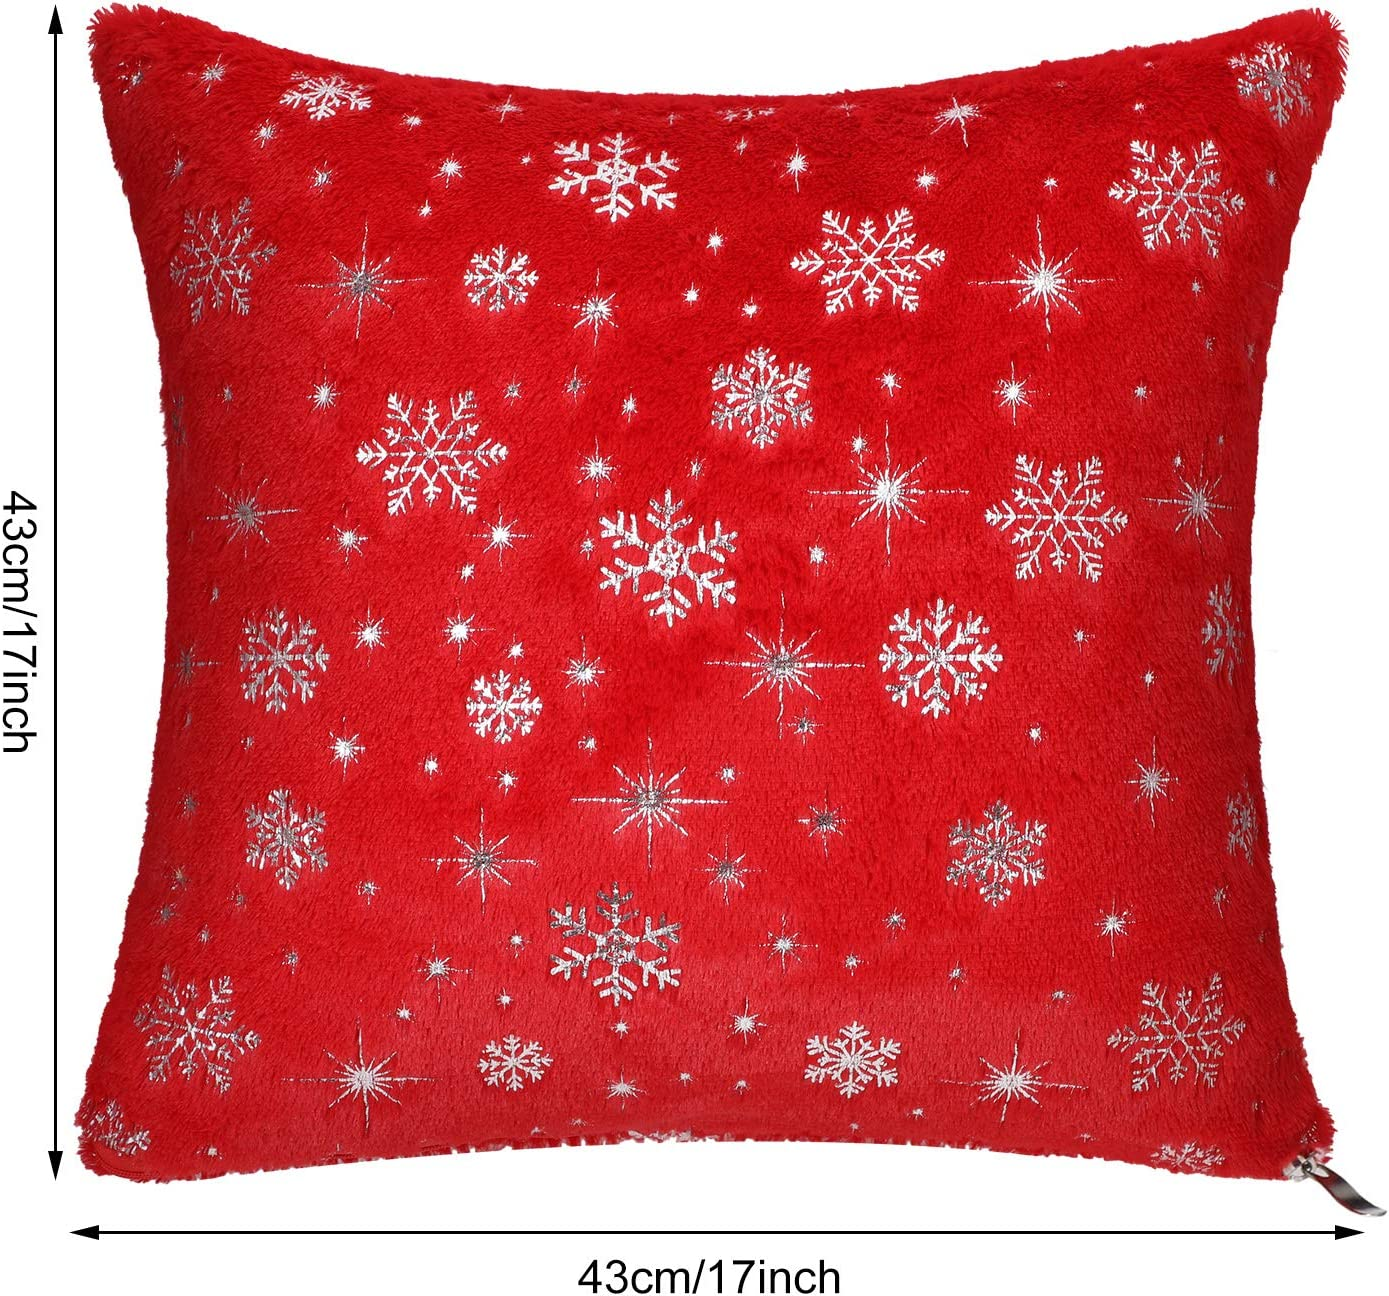 Jetec 2 Pieces Christmas Cozy Fleece Throw Pillow Cover Double Sided Snowflakes Pillow Cases Snowflake Embroidered Pillowcases for Bed Sofa Car White